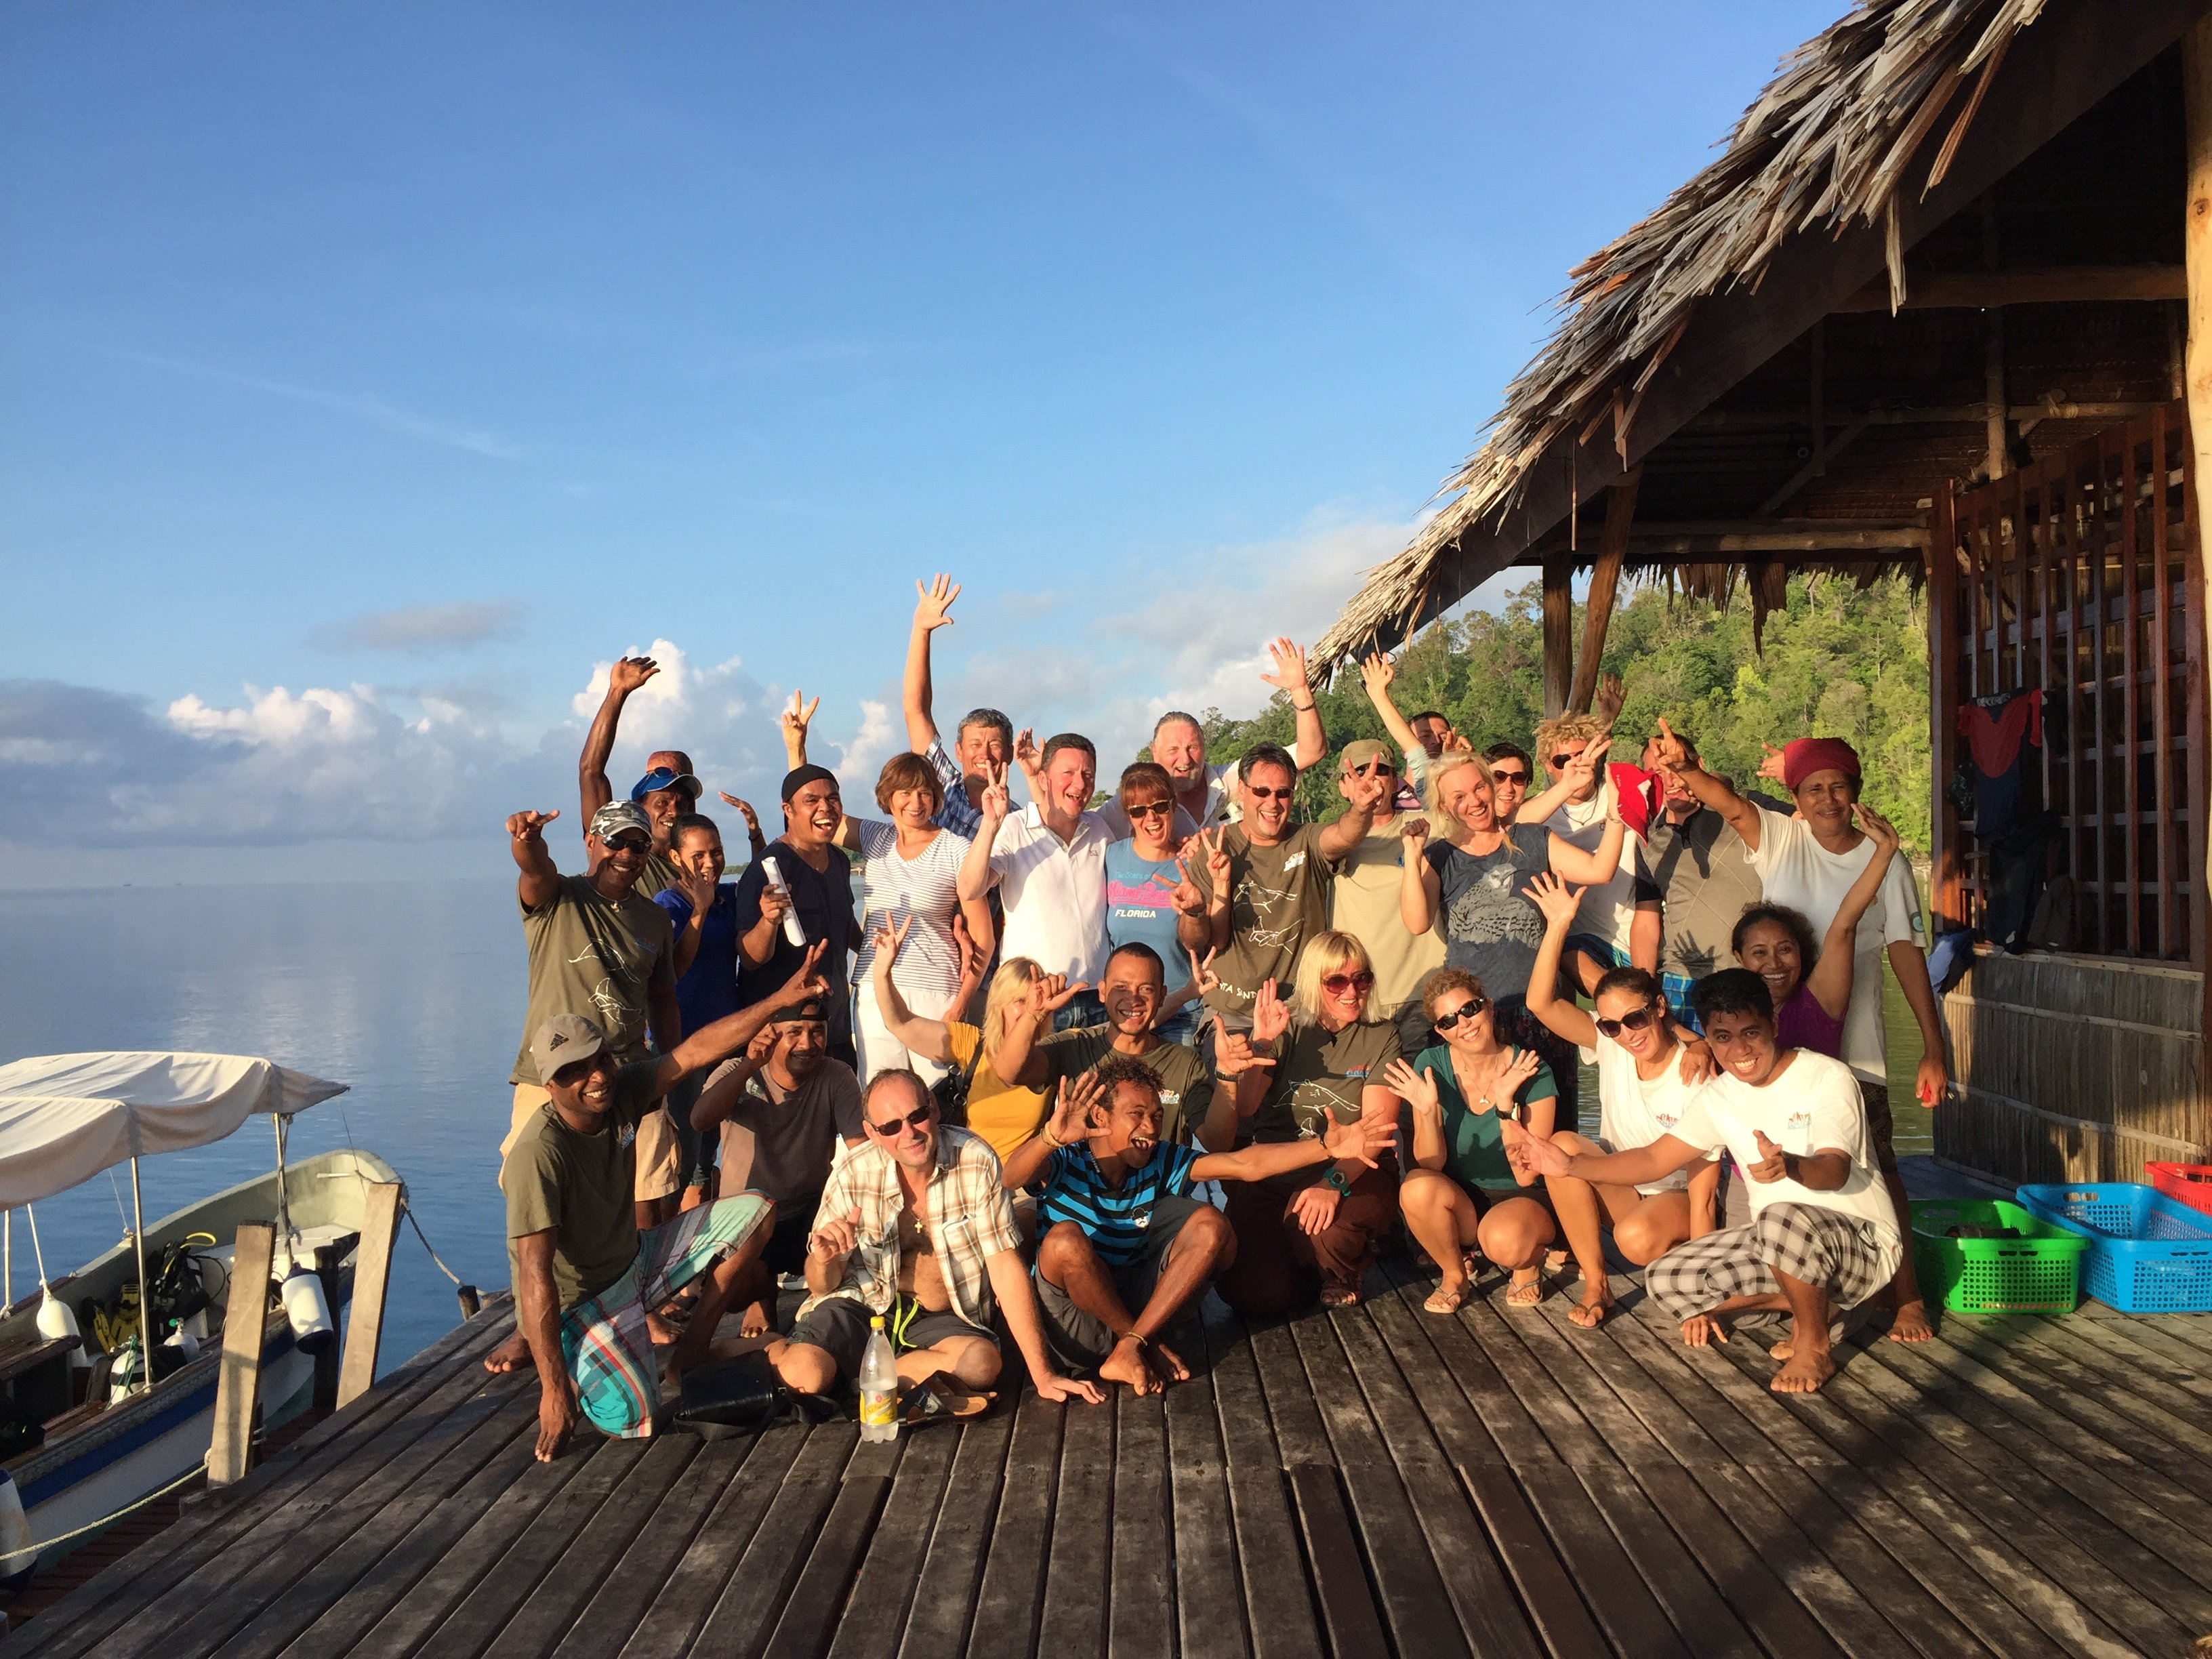 group picture of guests and staff of our dive resort in Raja Ampat before departure by boat back to Sorong